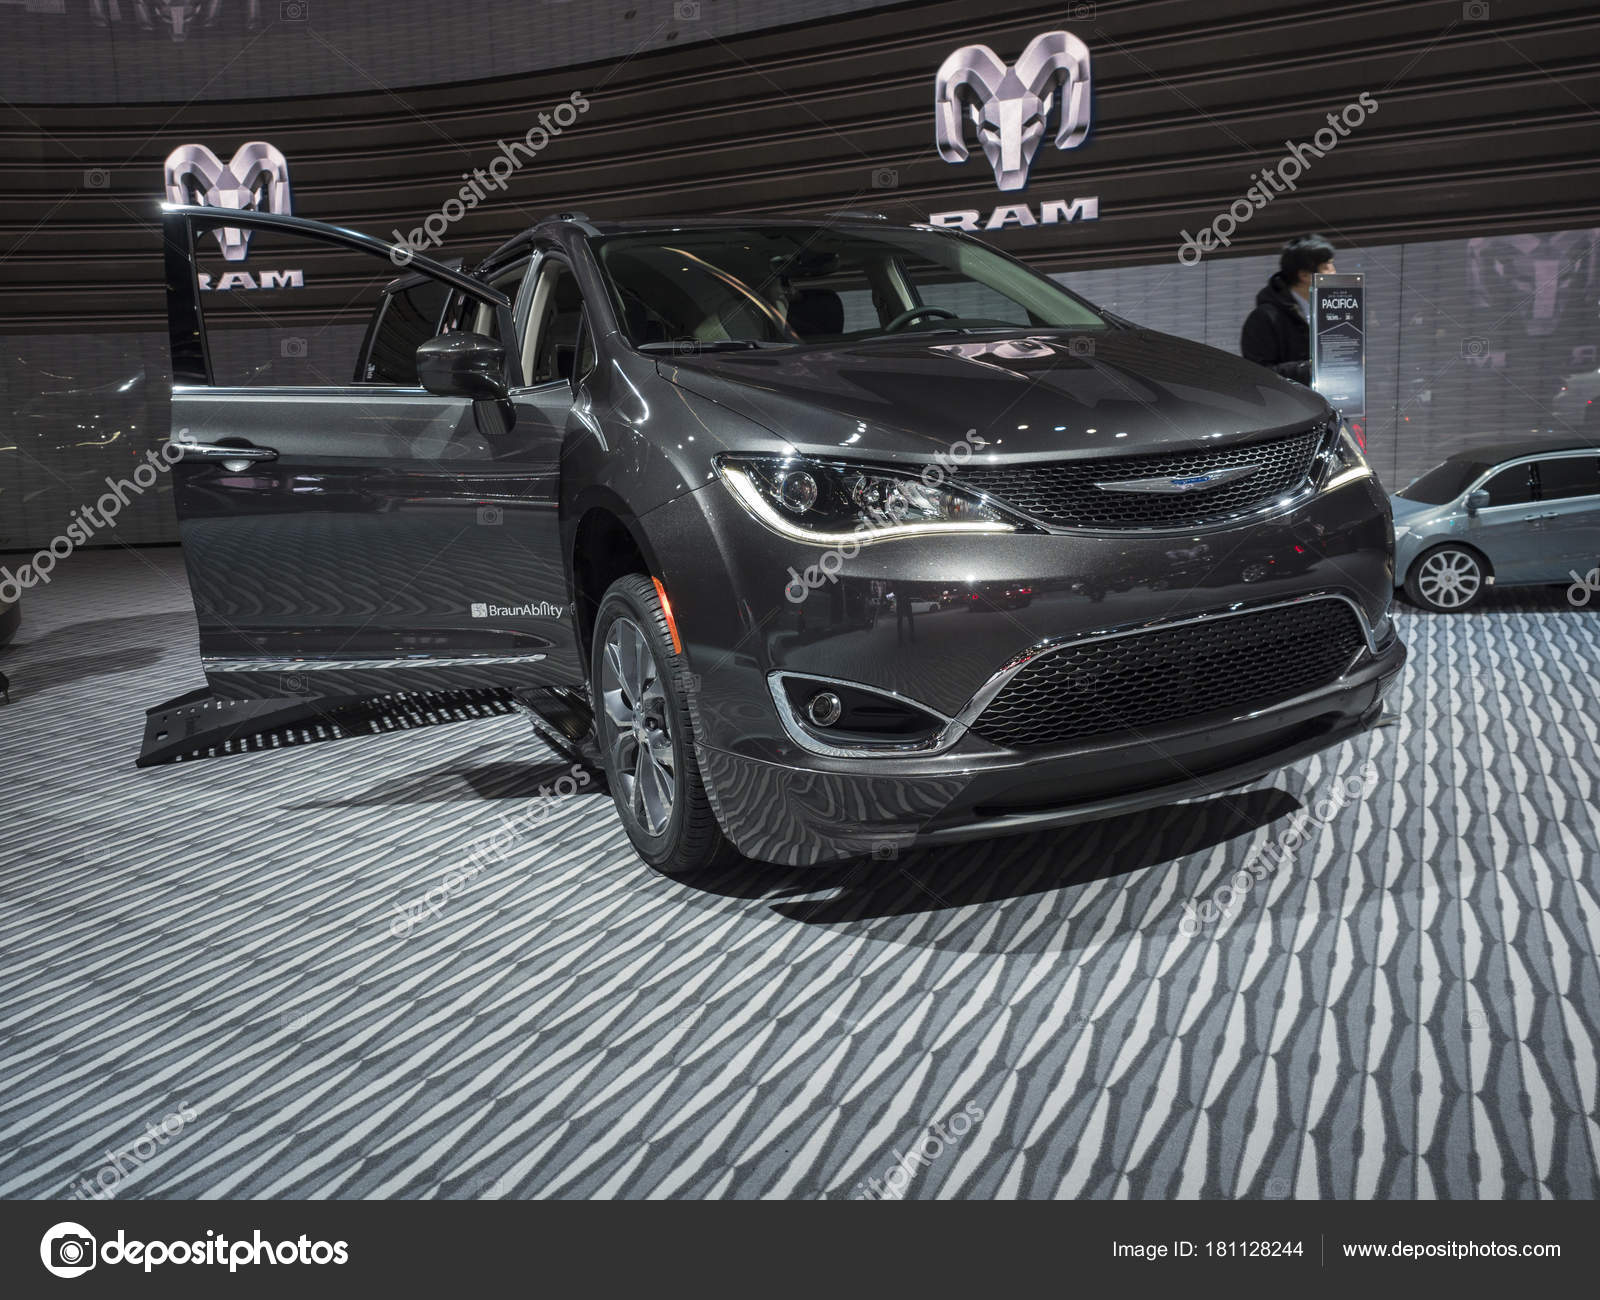 january group north naias fiat display at lighting detroit the wakefield litestructures downloads automobiles chrysler fca